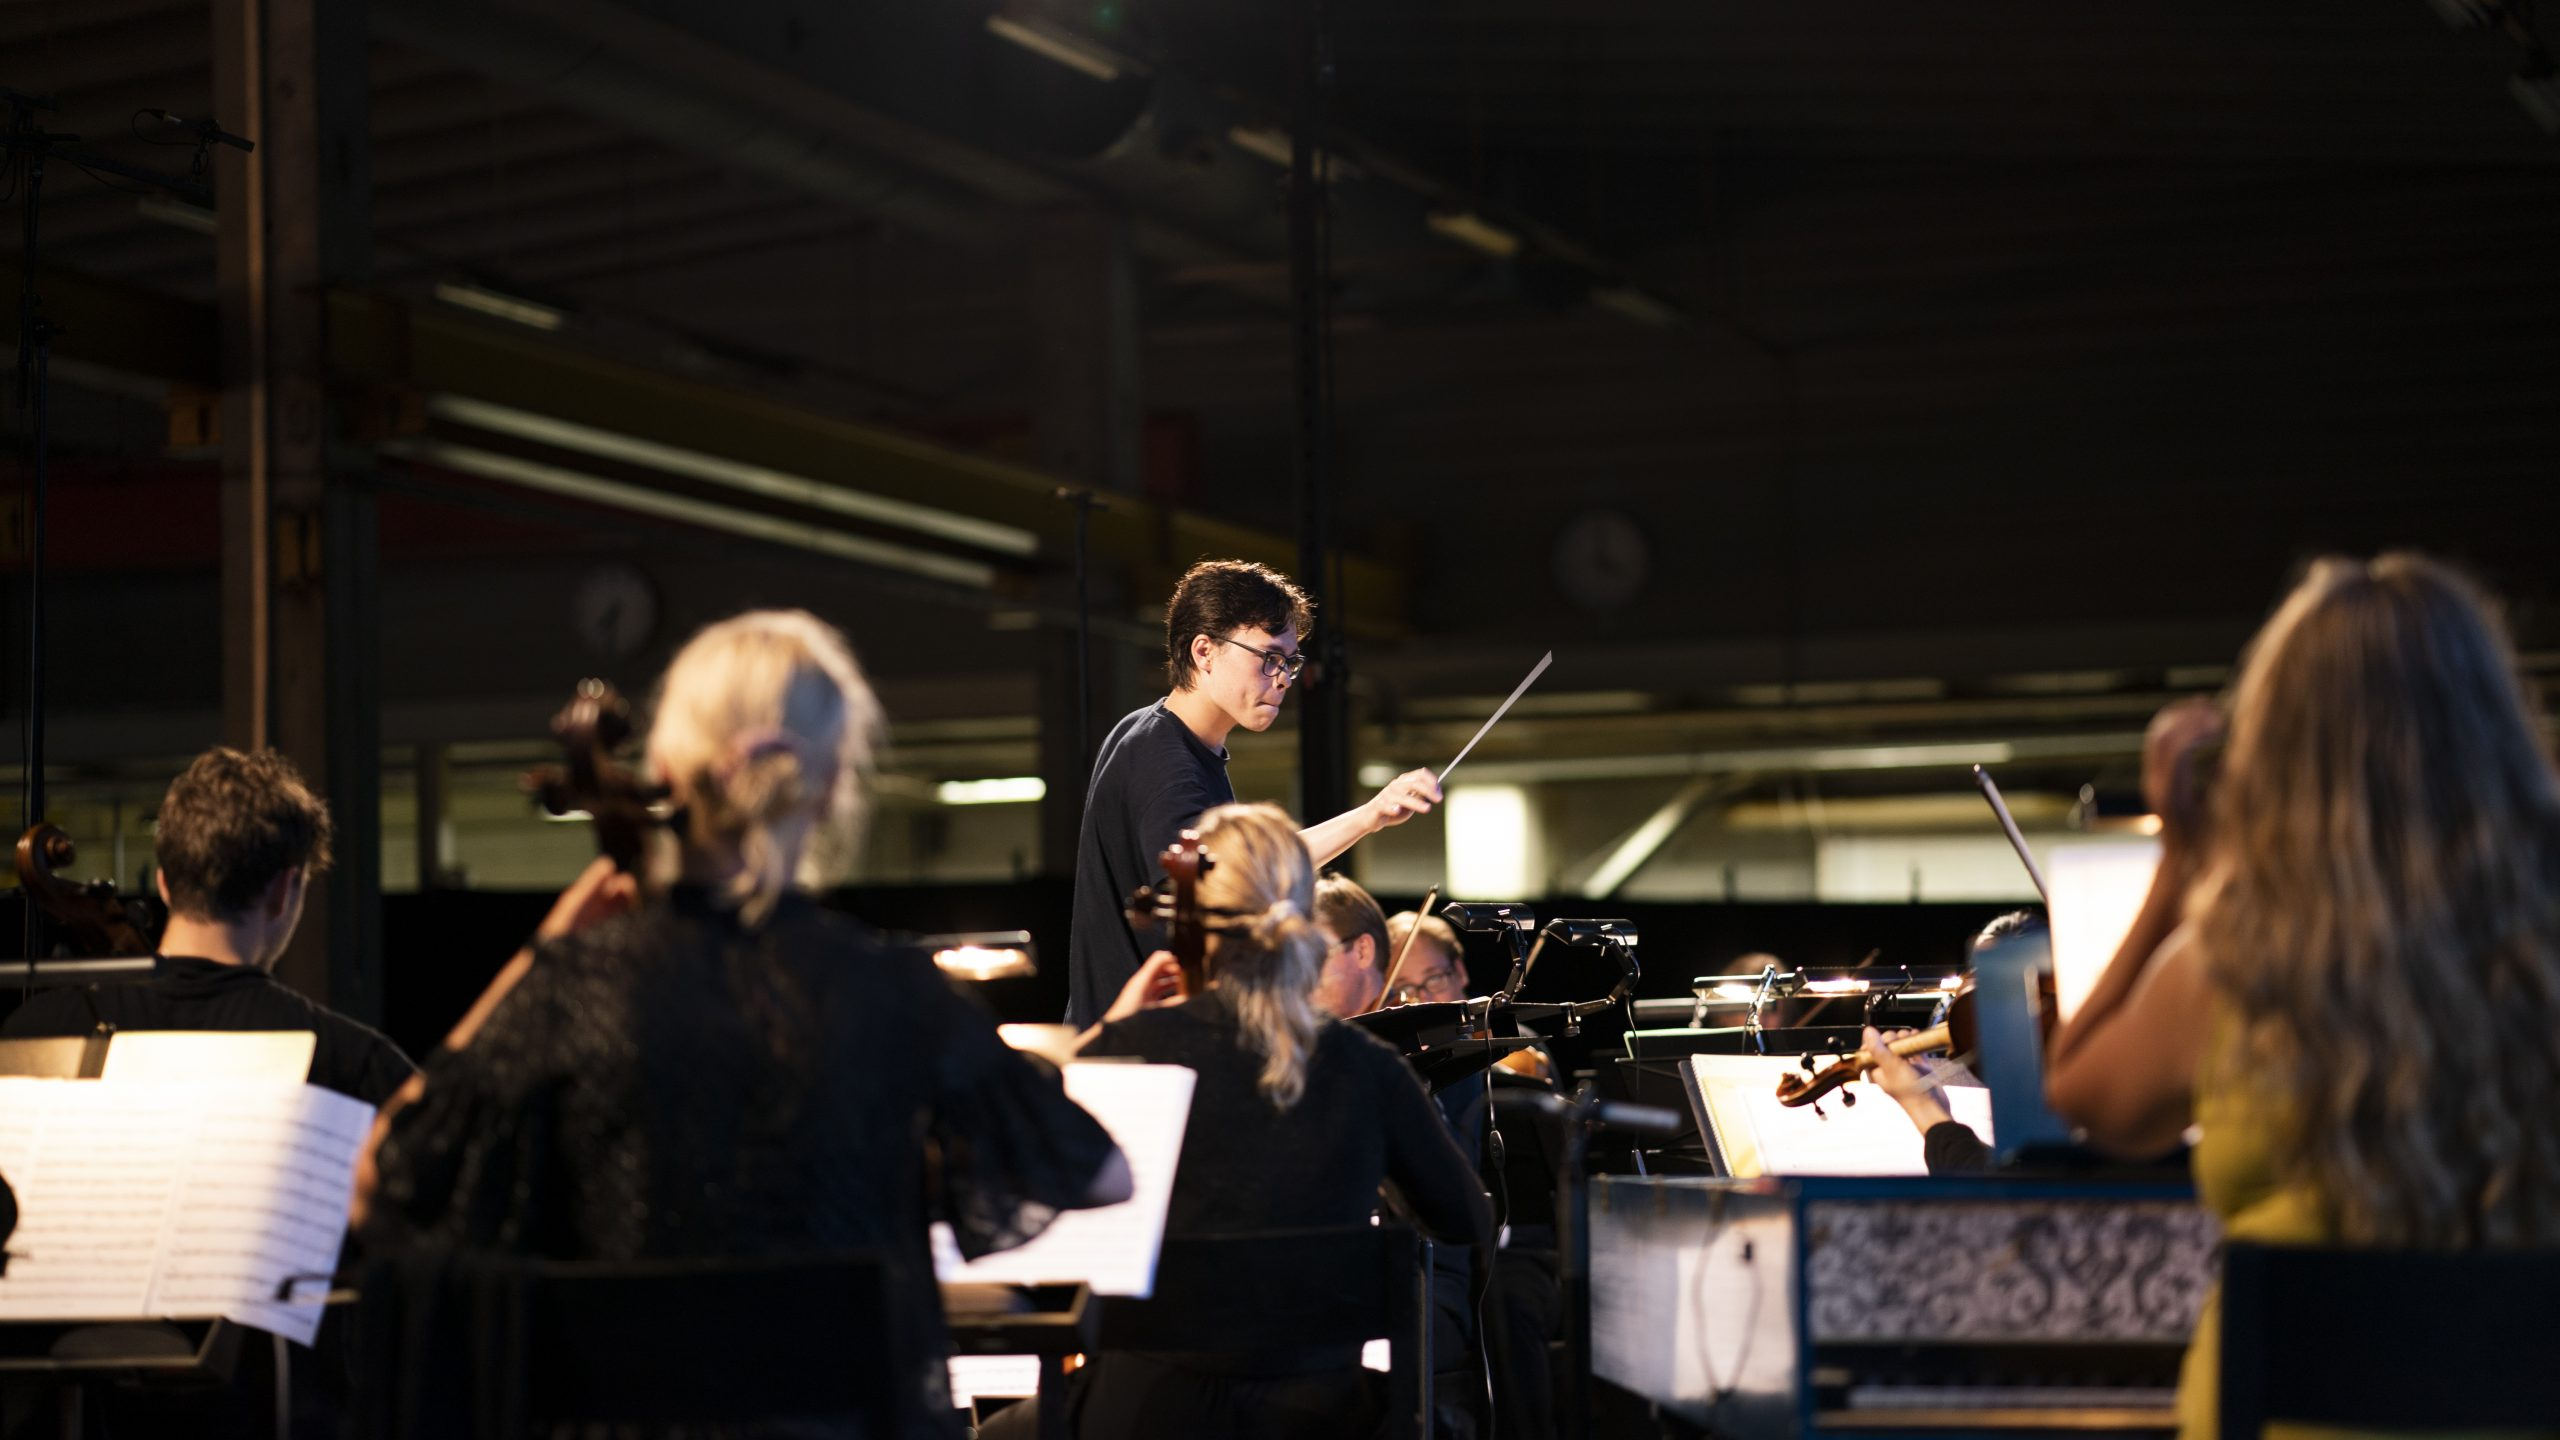 Young Conductor Conducting